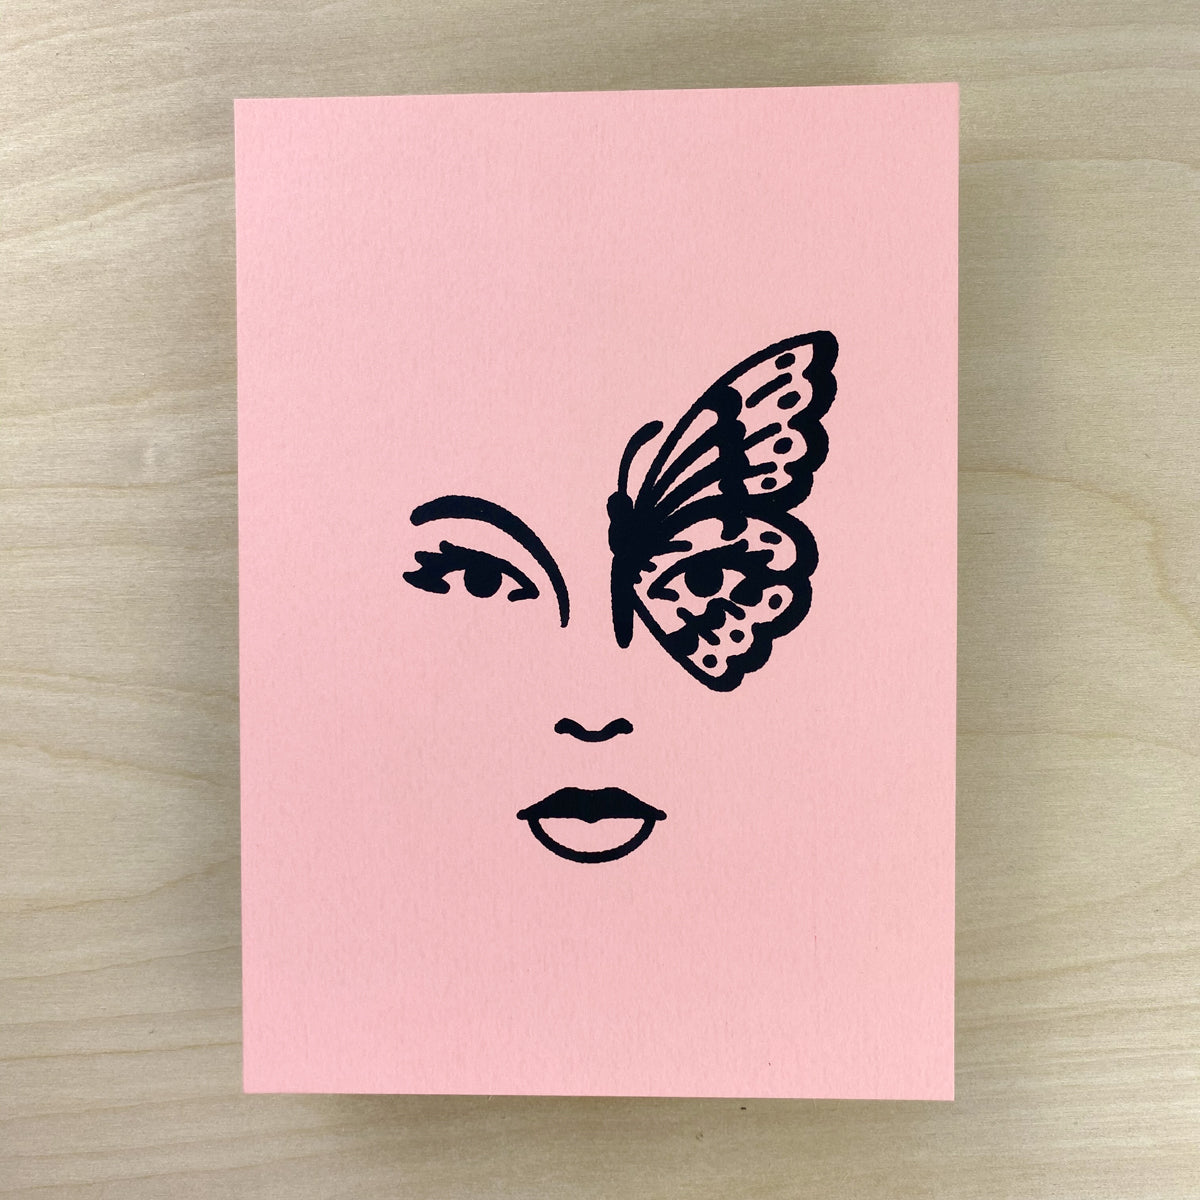 Butterfly Woman - Signed Print #194